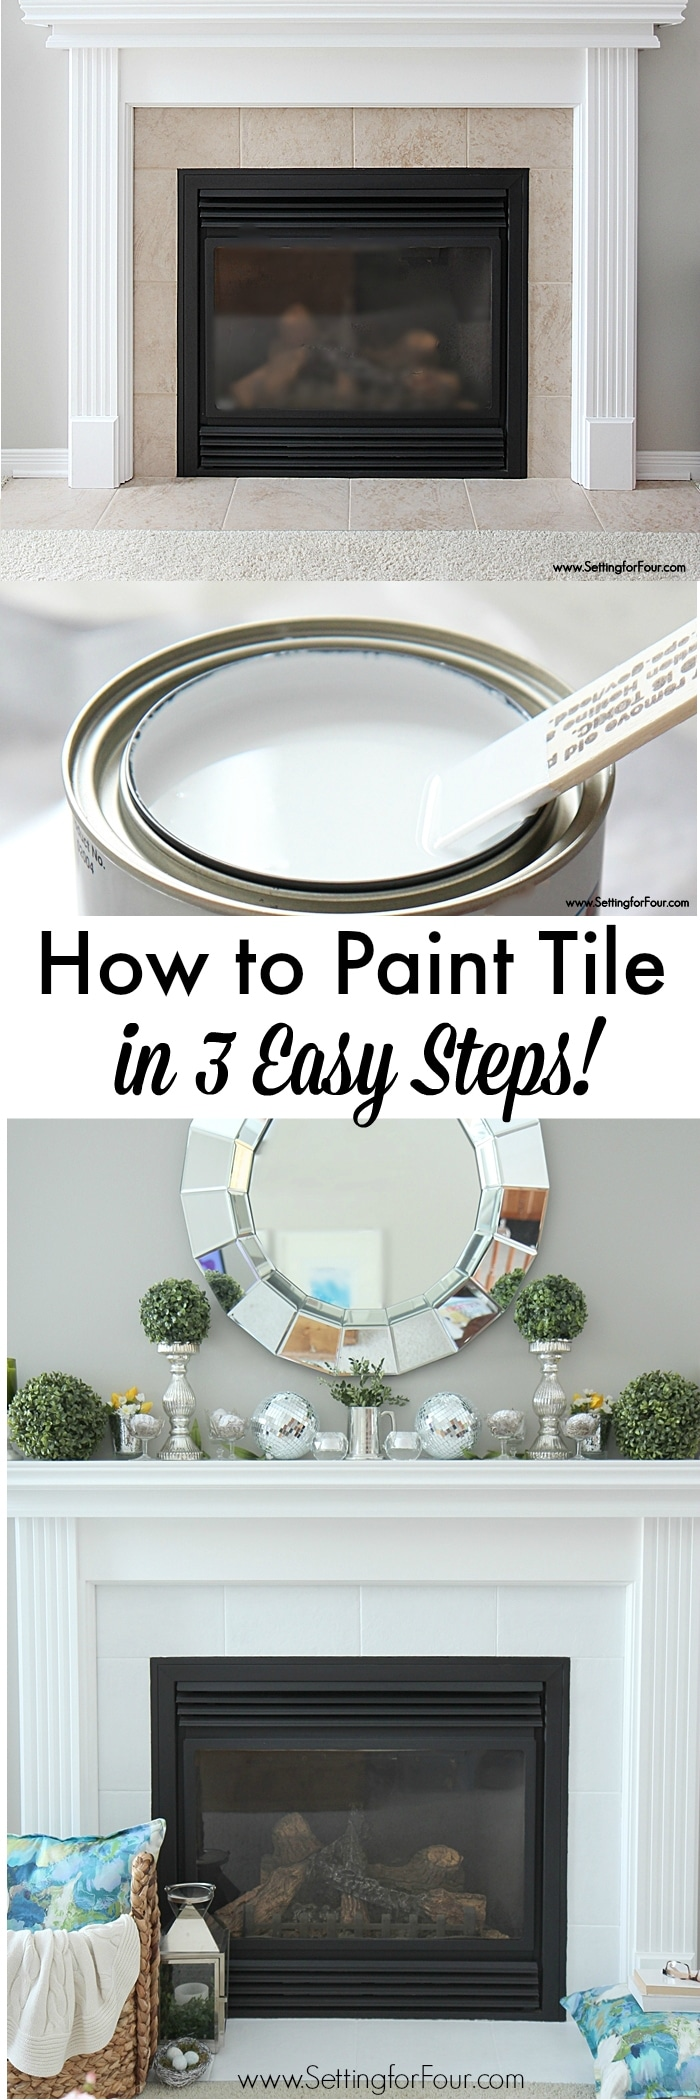 How to Paint Tile in 3 easy steps! See my before and after...if you're on the fence about painting your tile - do this!!! You'll love it!